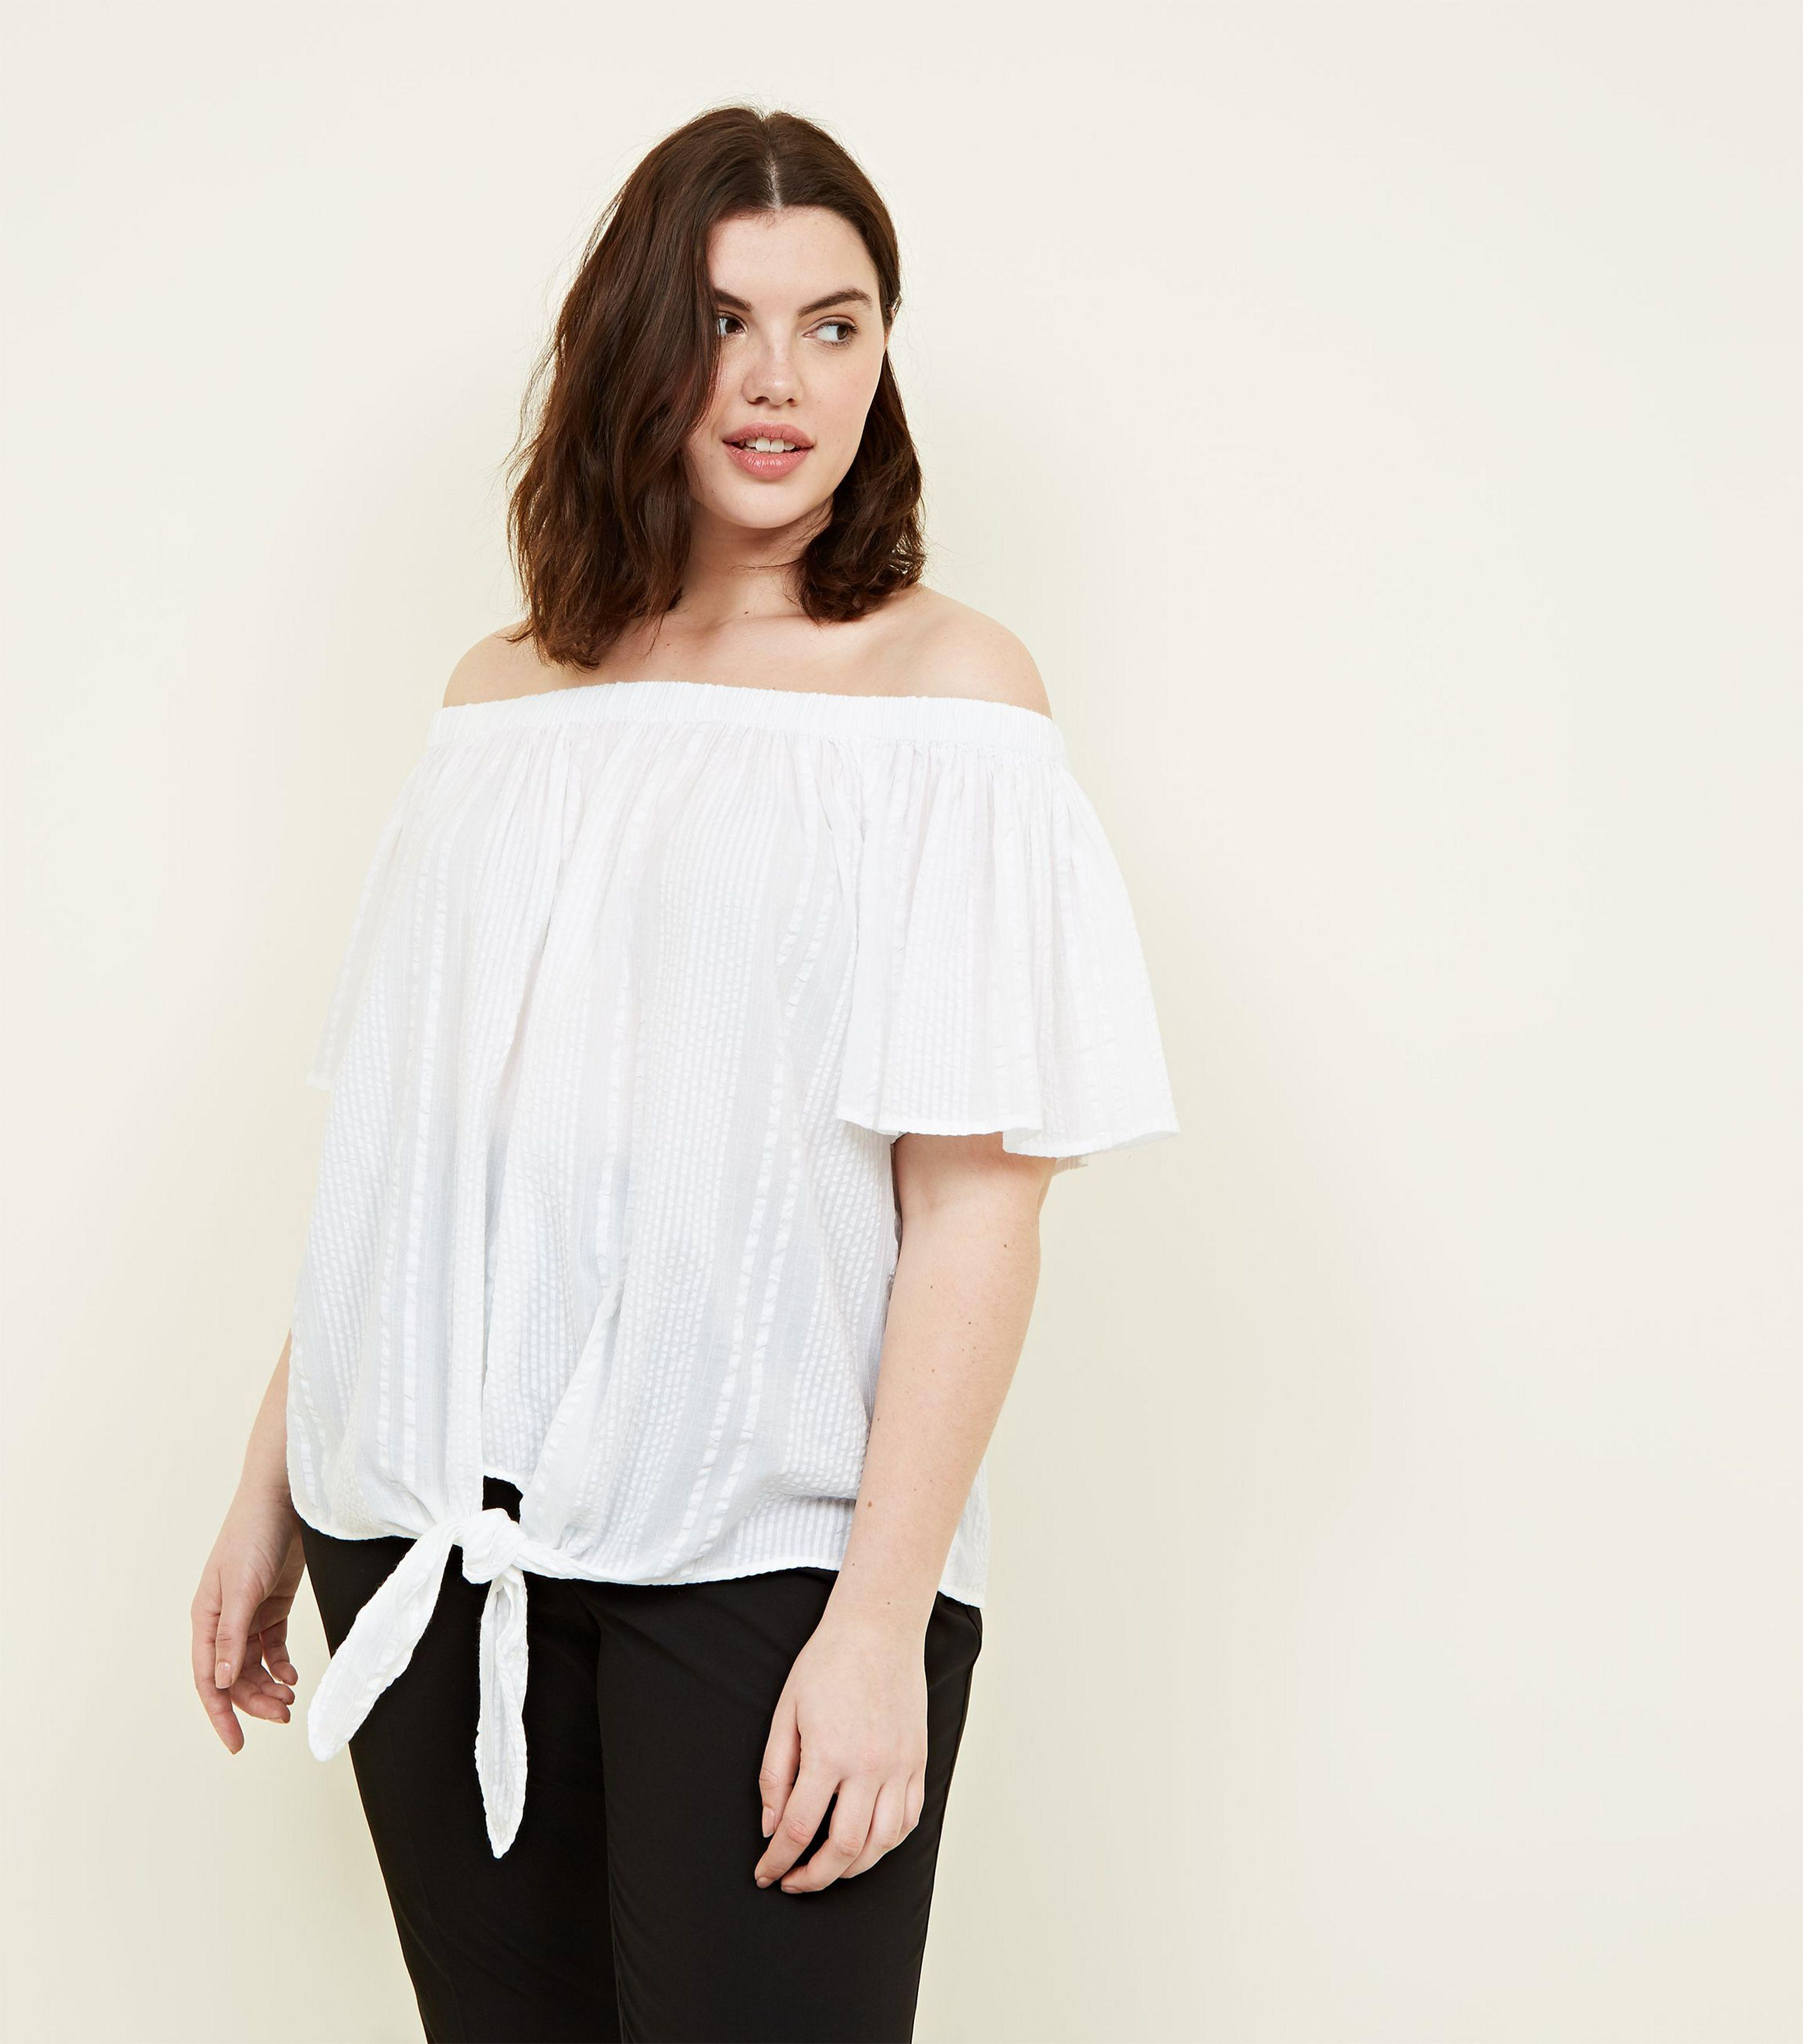 907566d3ff6 New Look Curves White Tie Front Bardot Top in White - Lyst